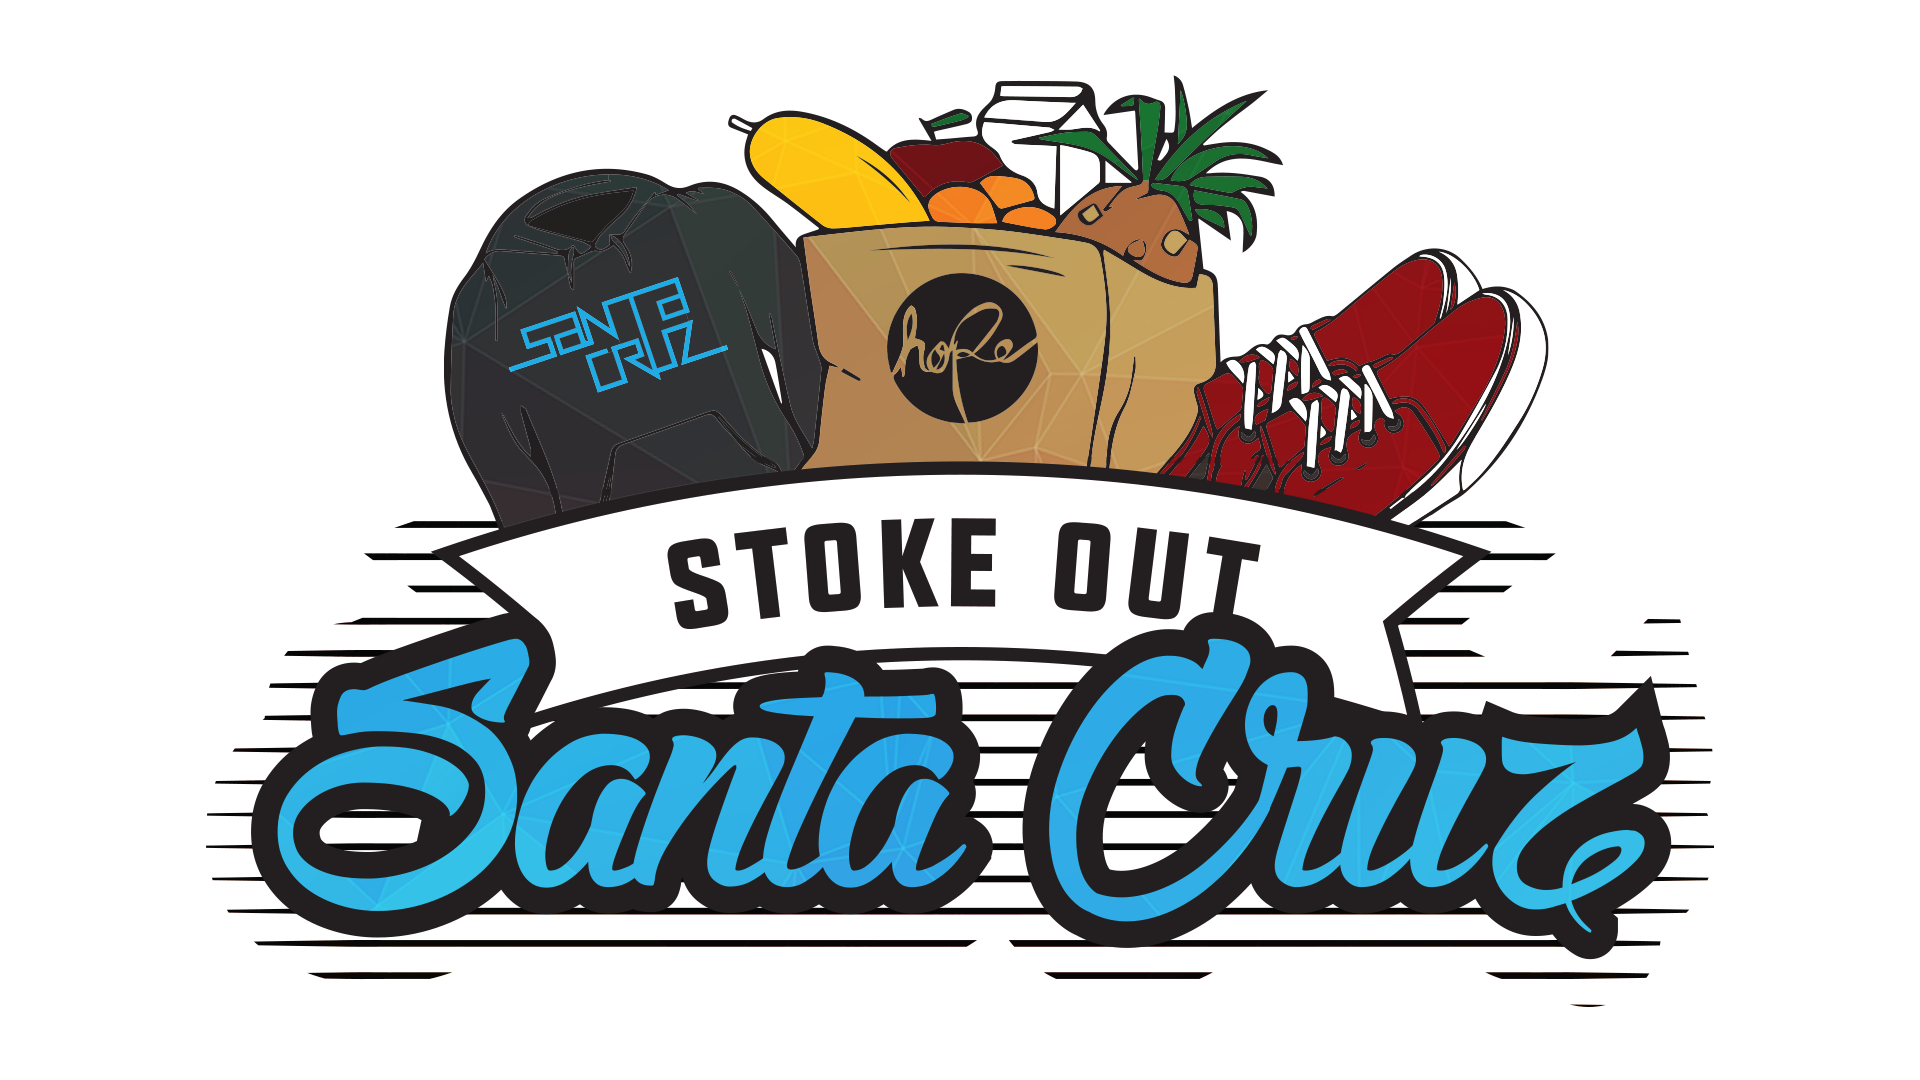 Stoke Out Santa Cruz logo with color.png